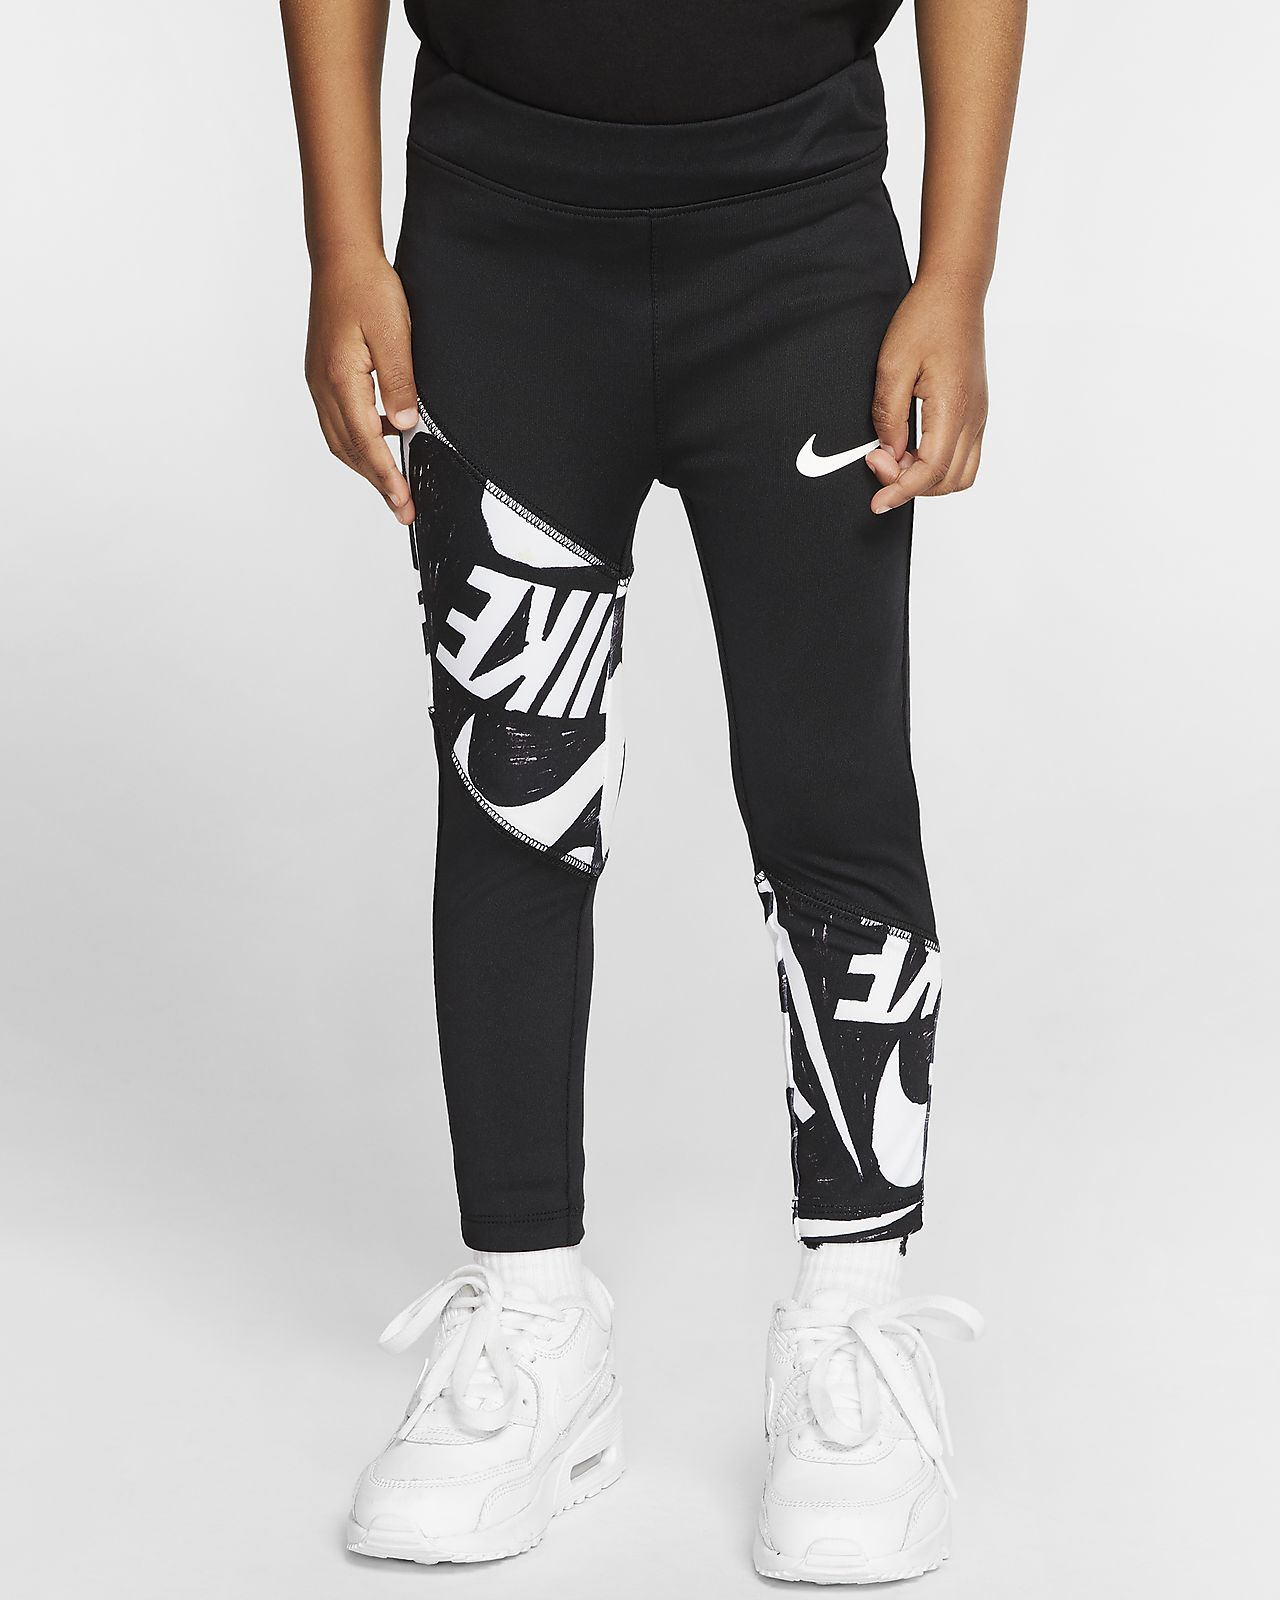 Nike Dri-FIT Toddler Leggings